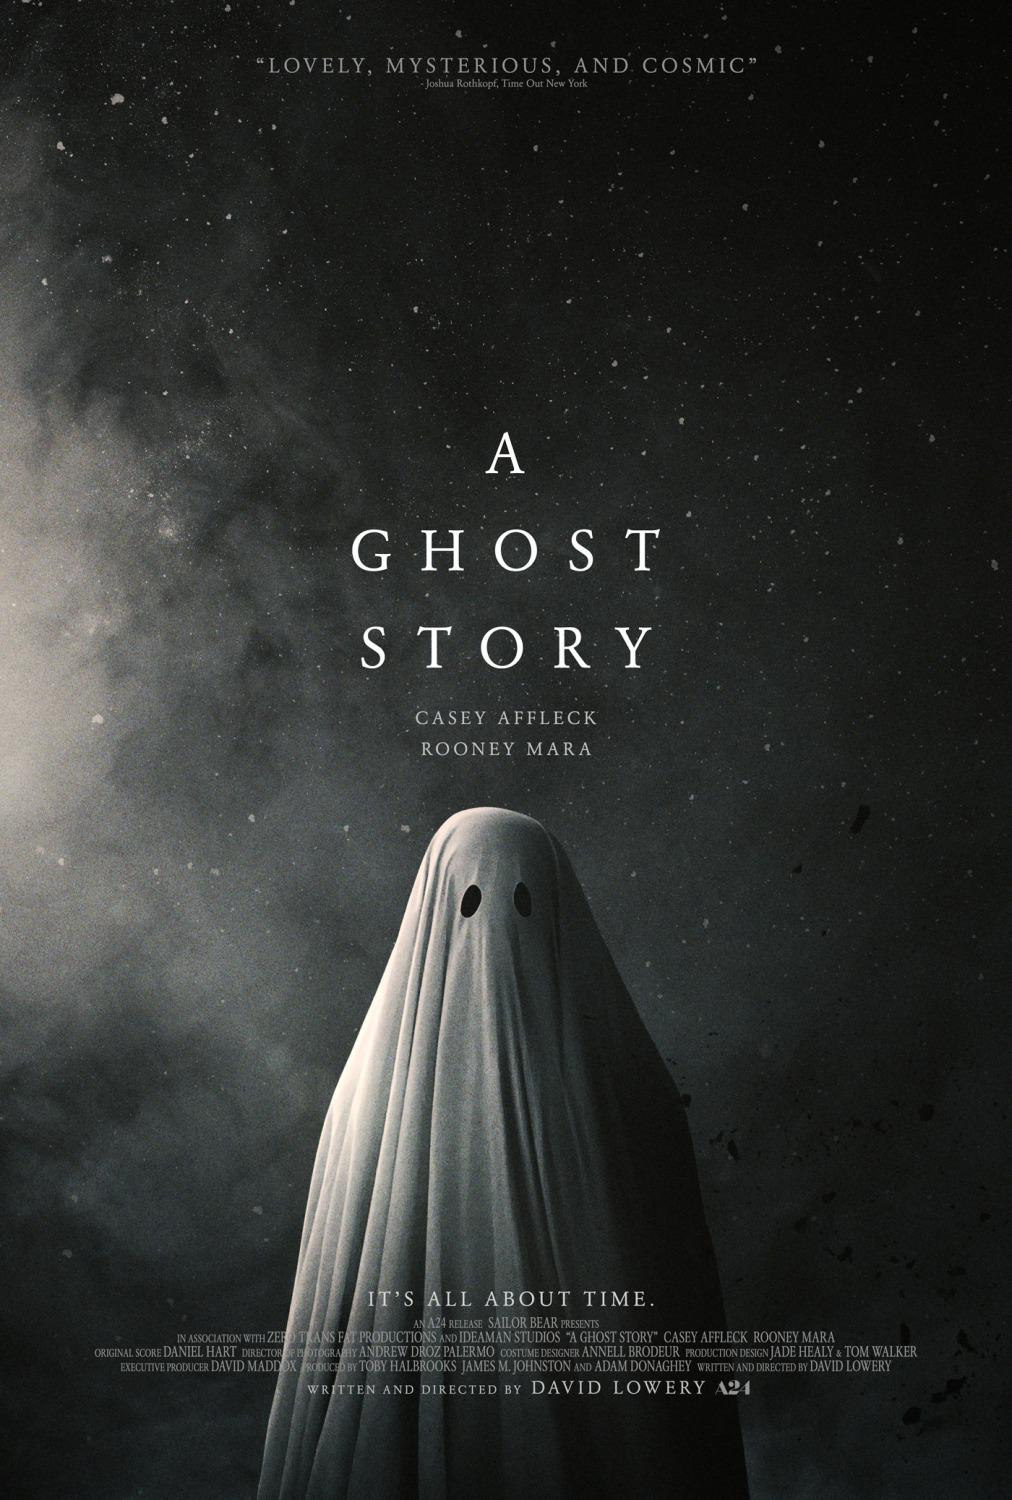 A ghost Story - all about time - Lovely, Mysterious and Cosmic Story